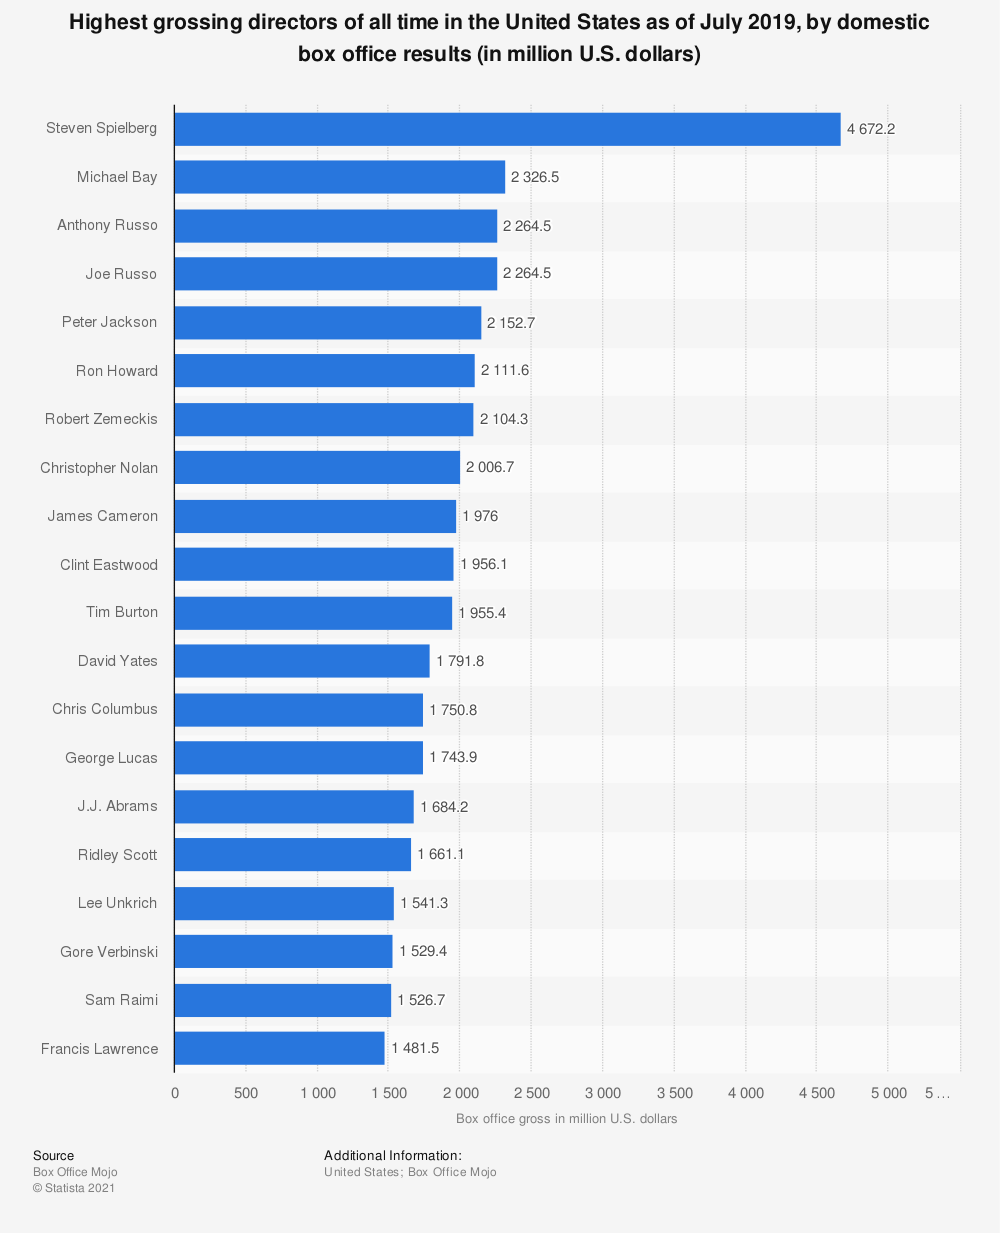 Statistic: Highest grossing directors of all time in the United States as of July 2019, by domestic box office results (in million U.S. dollars) | Statista